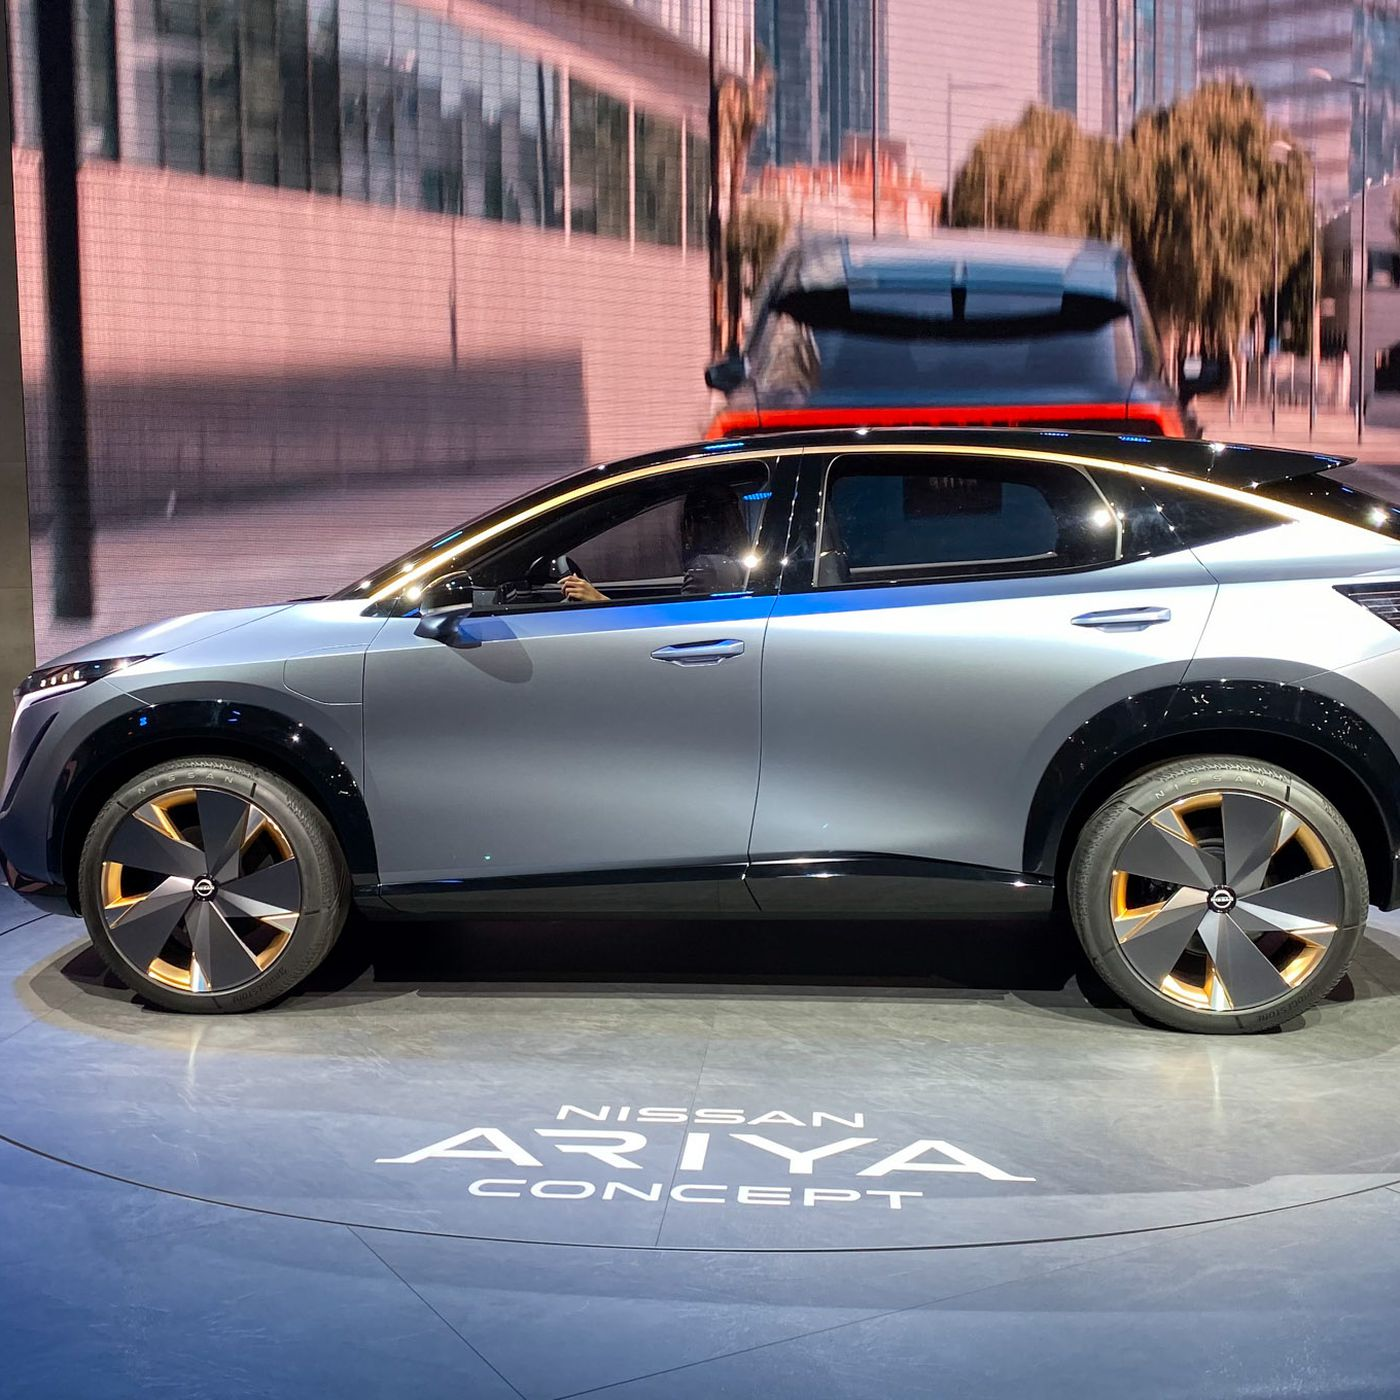 Nissan S New Electric Concept Car Looks Like A Solid Successor To The Leaf The Verge